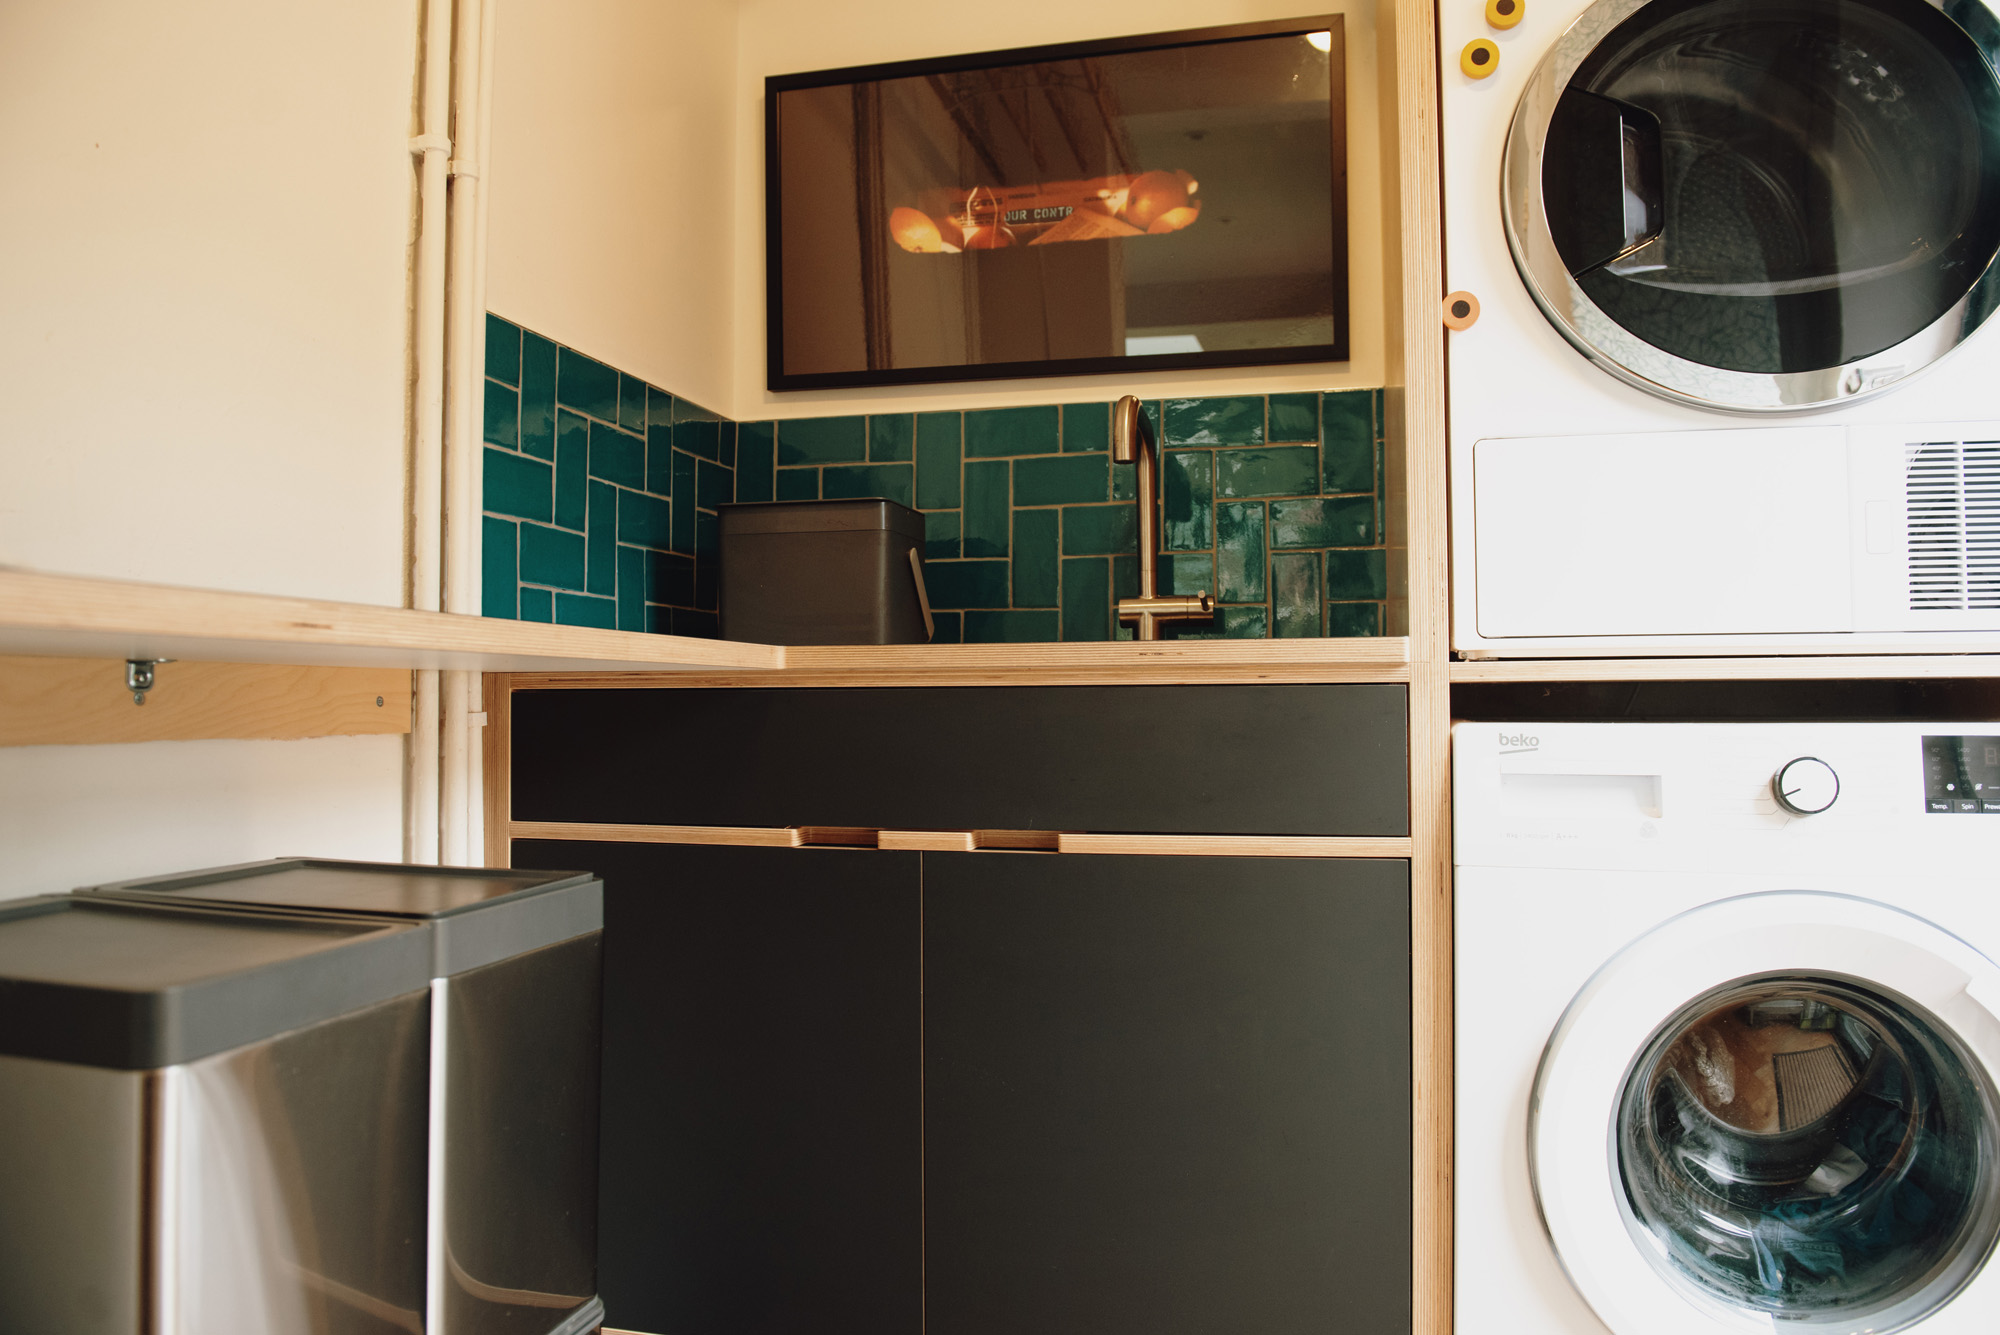 utility room with stacked washer dryer and sink area